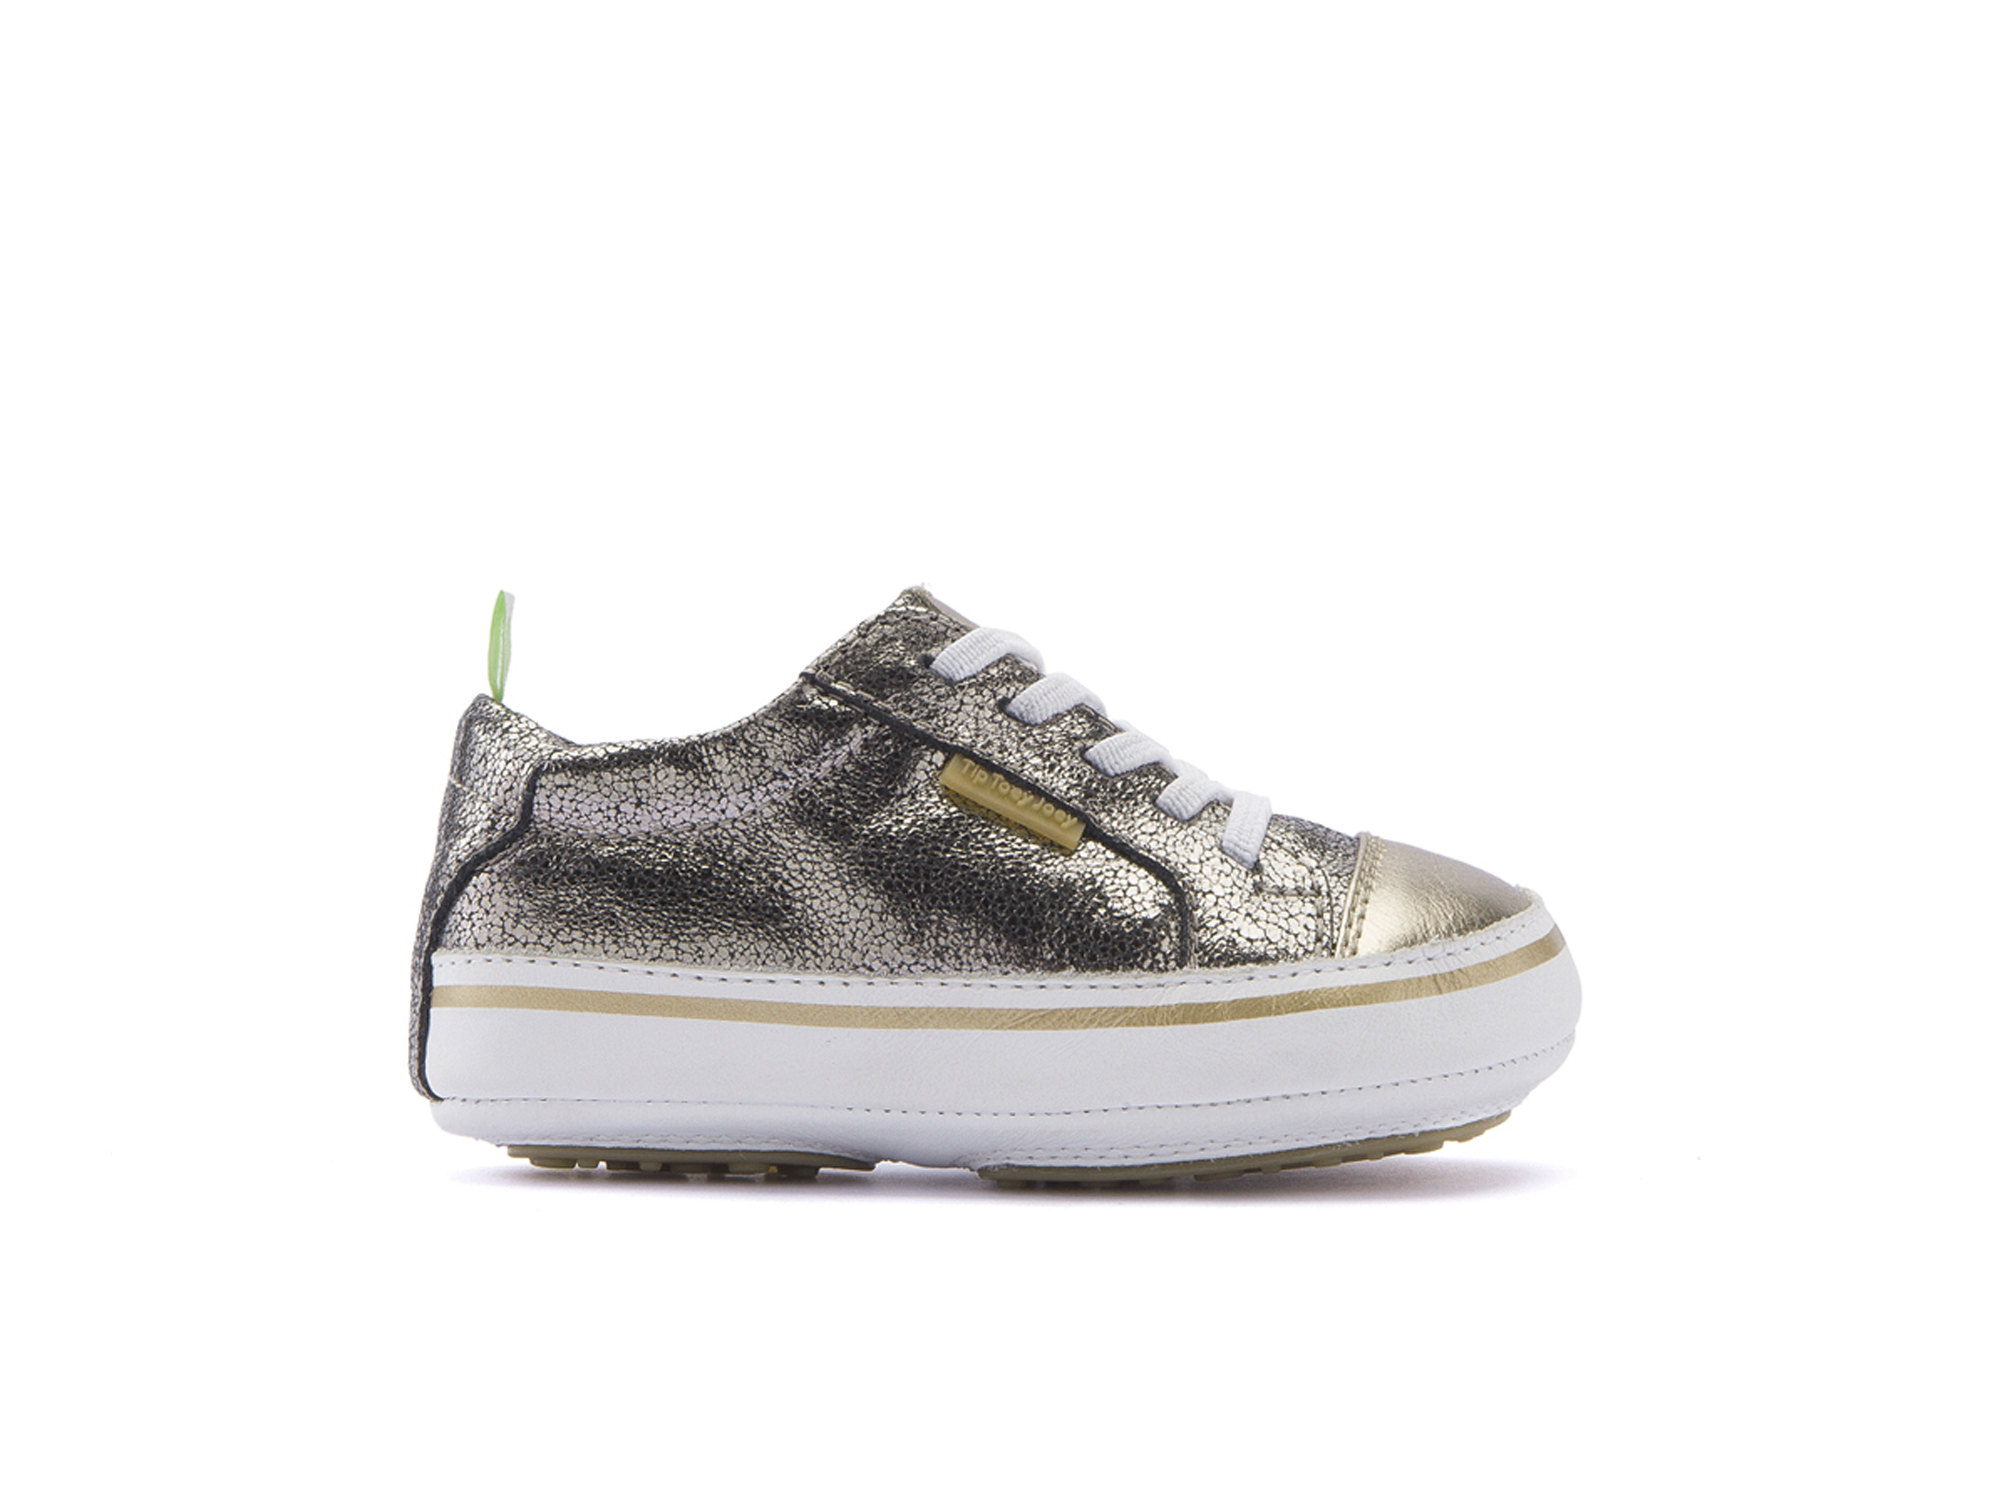 Tênis Funky Old Silver Shine/ Gold Sparkle/ White Baby 0 à 2 anos - 1